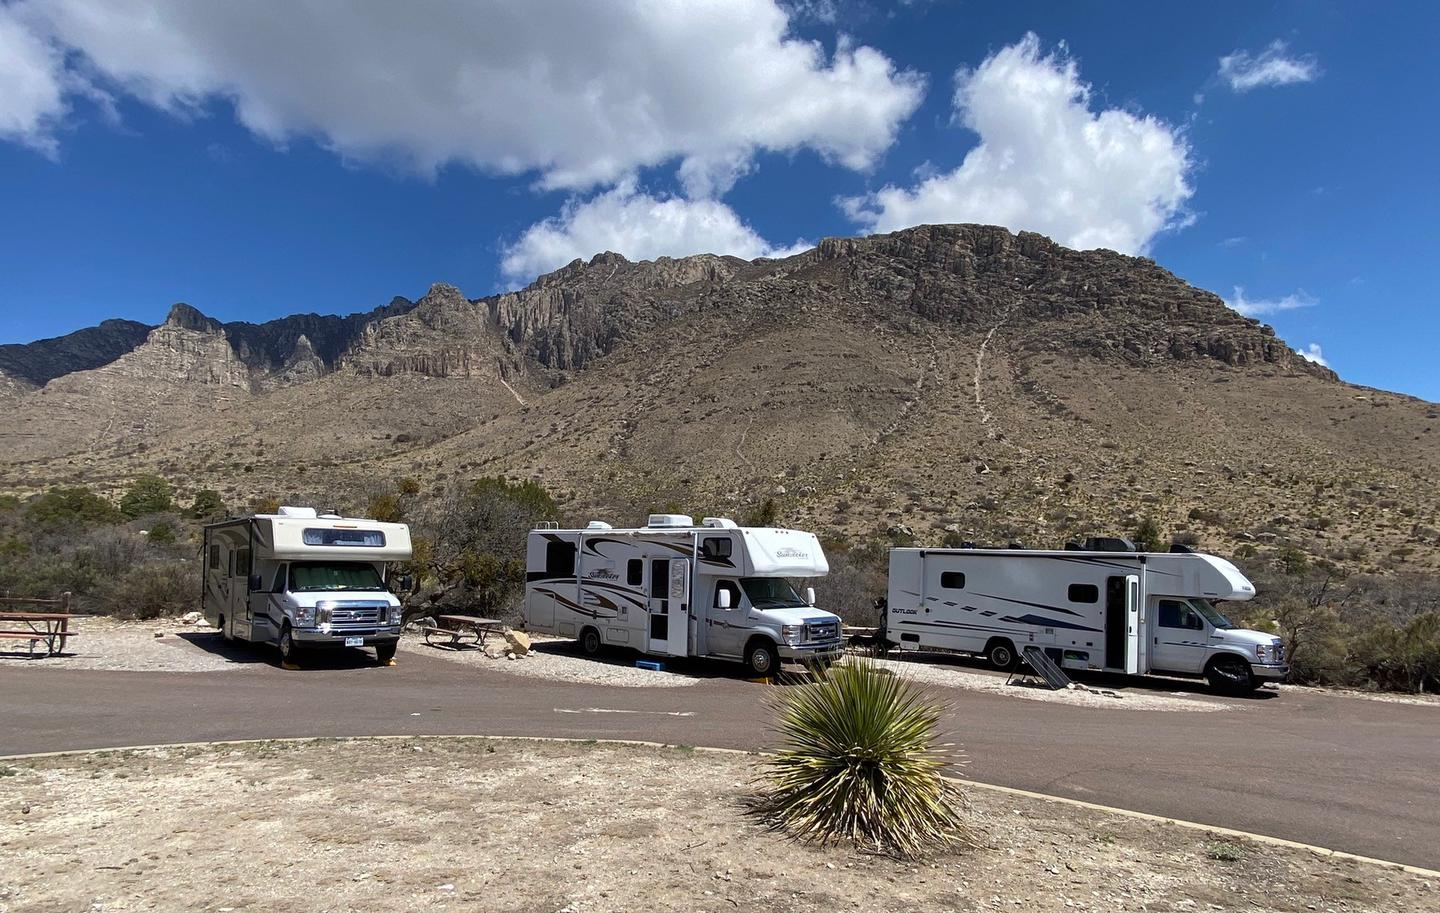 This photo of RV campsites number 31, 32 and 33 show the sites occupied by RVs to demonstrate the size limitations of the site.RV campsites 31, 32 and 33 with each sites occupied by an RV.  These small sites will not hold extra vehicles, etc.